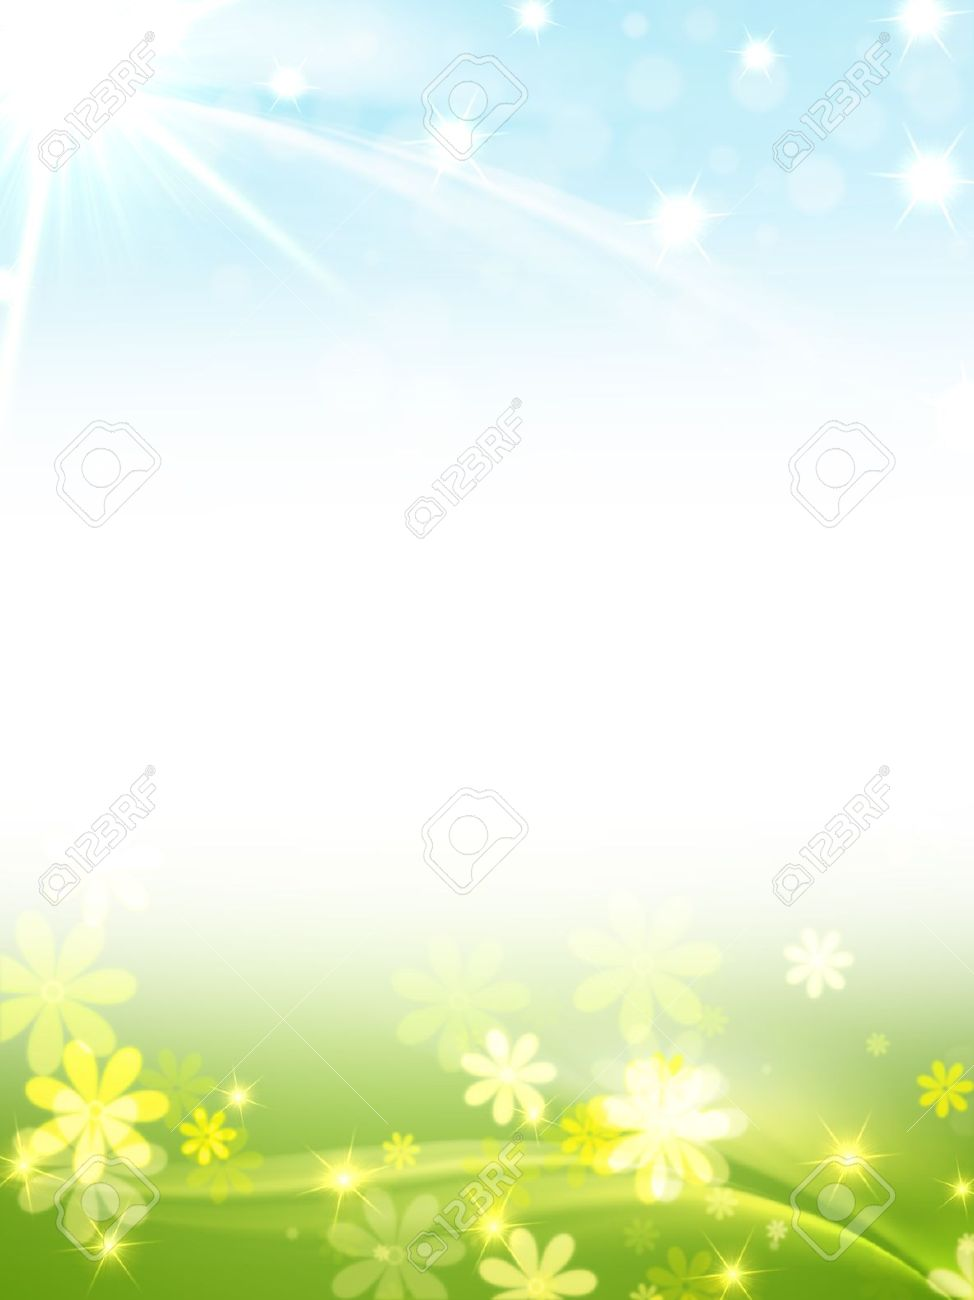 blue green frame with flowers, stars and sun, spring motif Stock Photo - 12548554